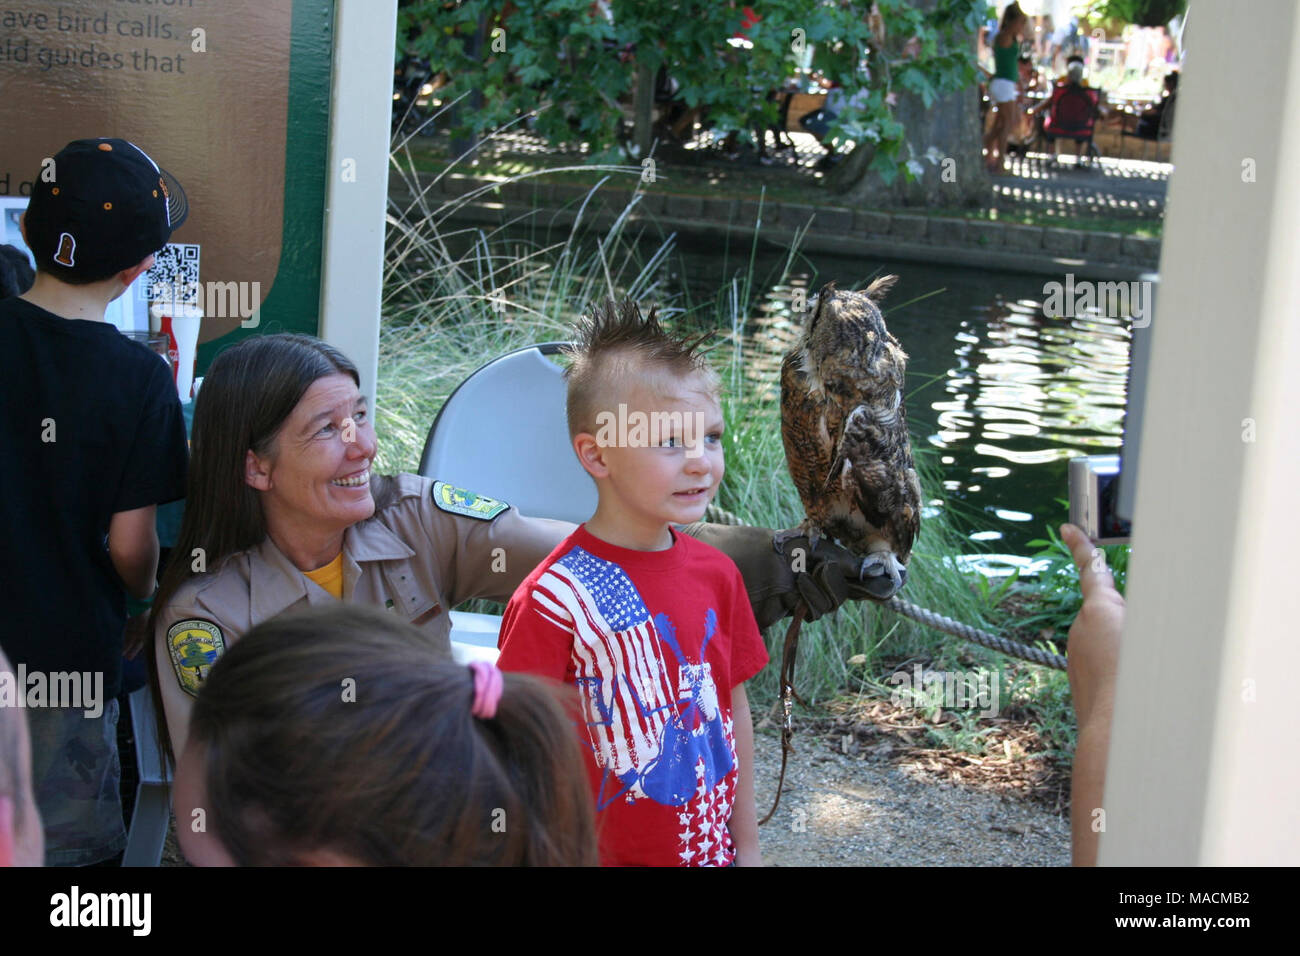 Some Kids Got The Chance To Meet Live Animals Up For The First Time Doi Agencies Us Fish